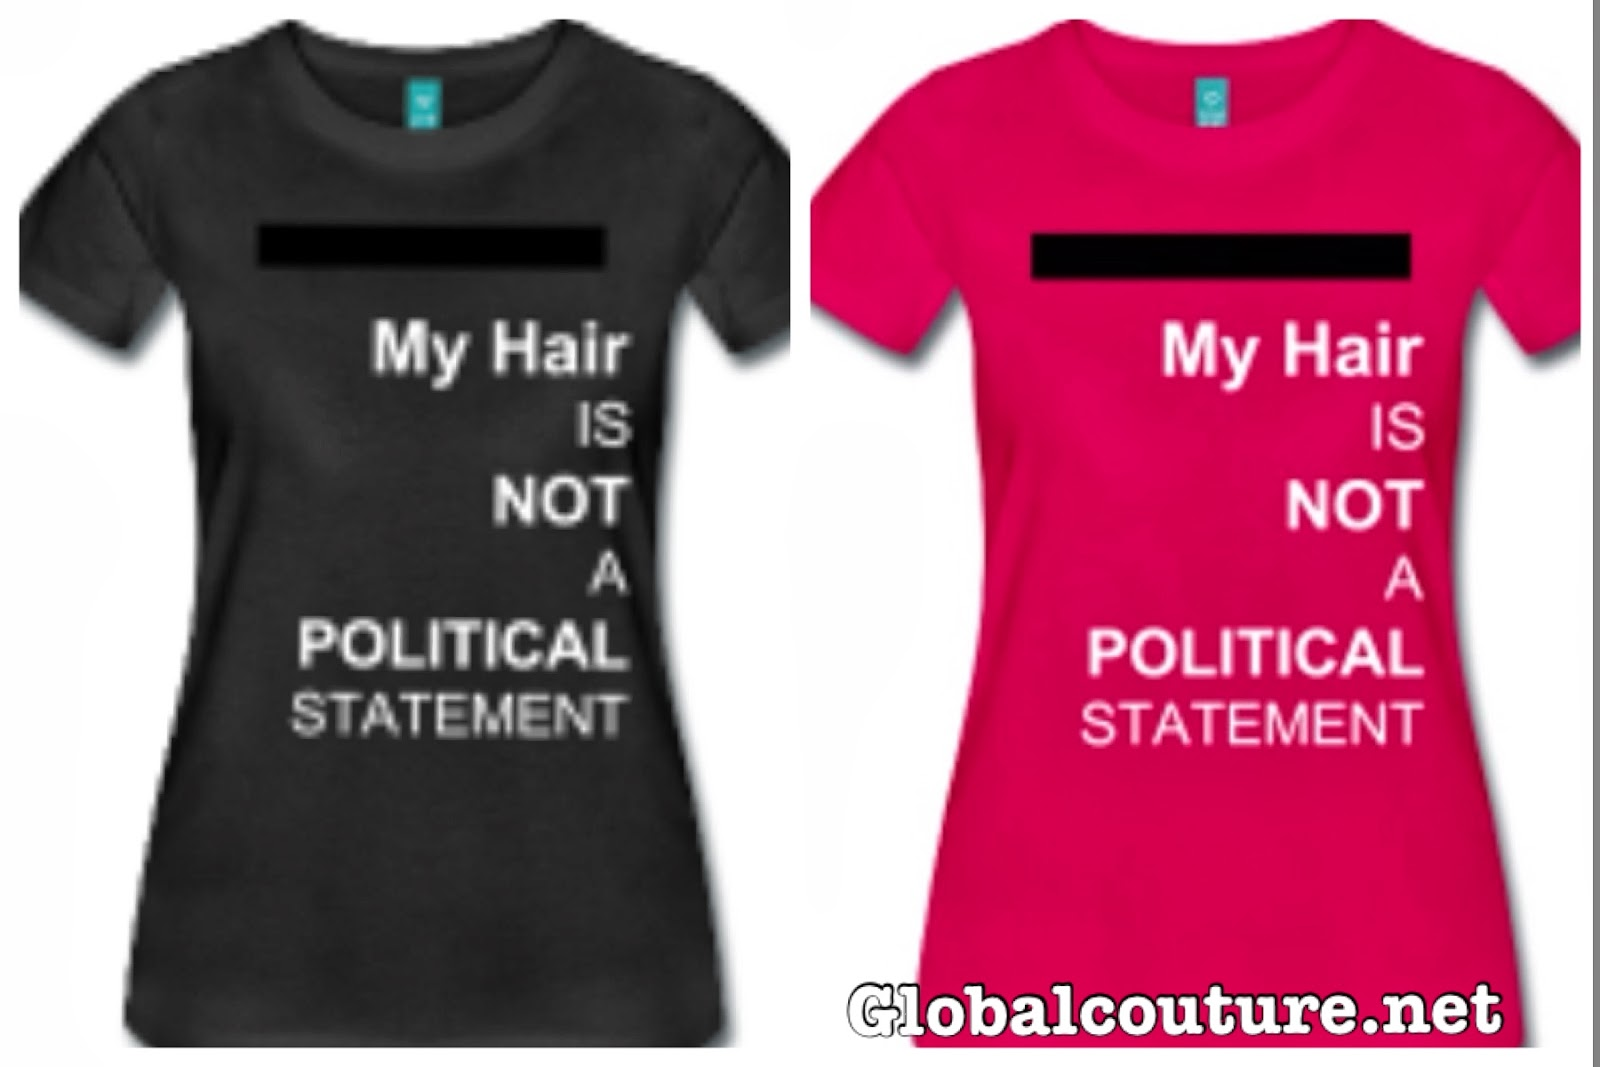 http://globalcouture.spreadshirt.com/my-hair-is-not-a-political-statement-womens-tee-A13957141/customize/color/376